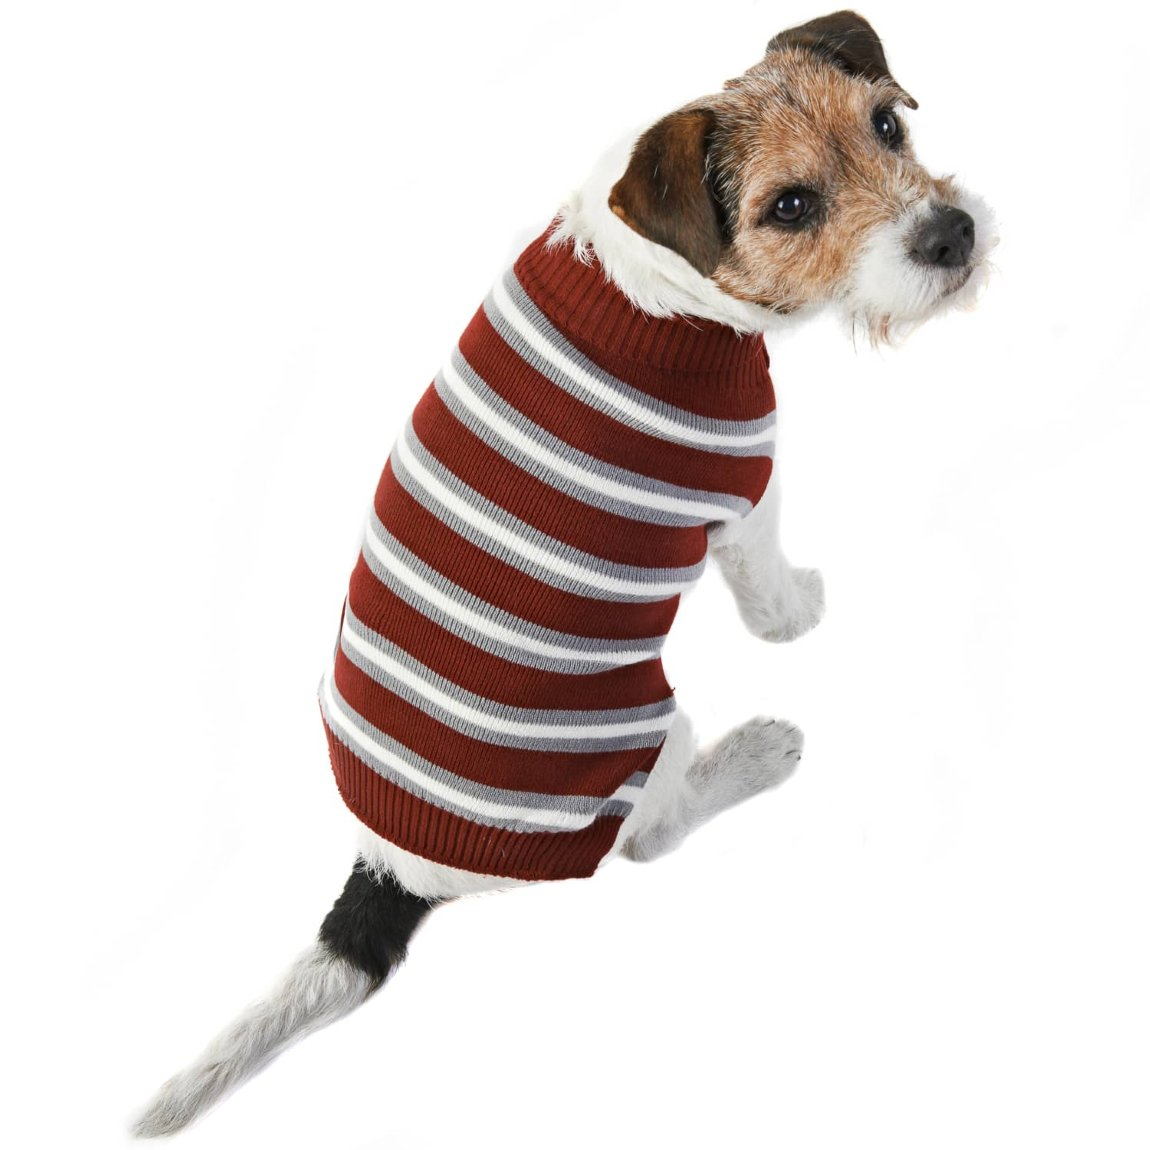 Doggy Jumper - X-Small - Small - Stripes